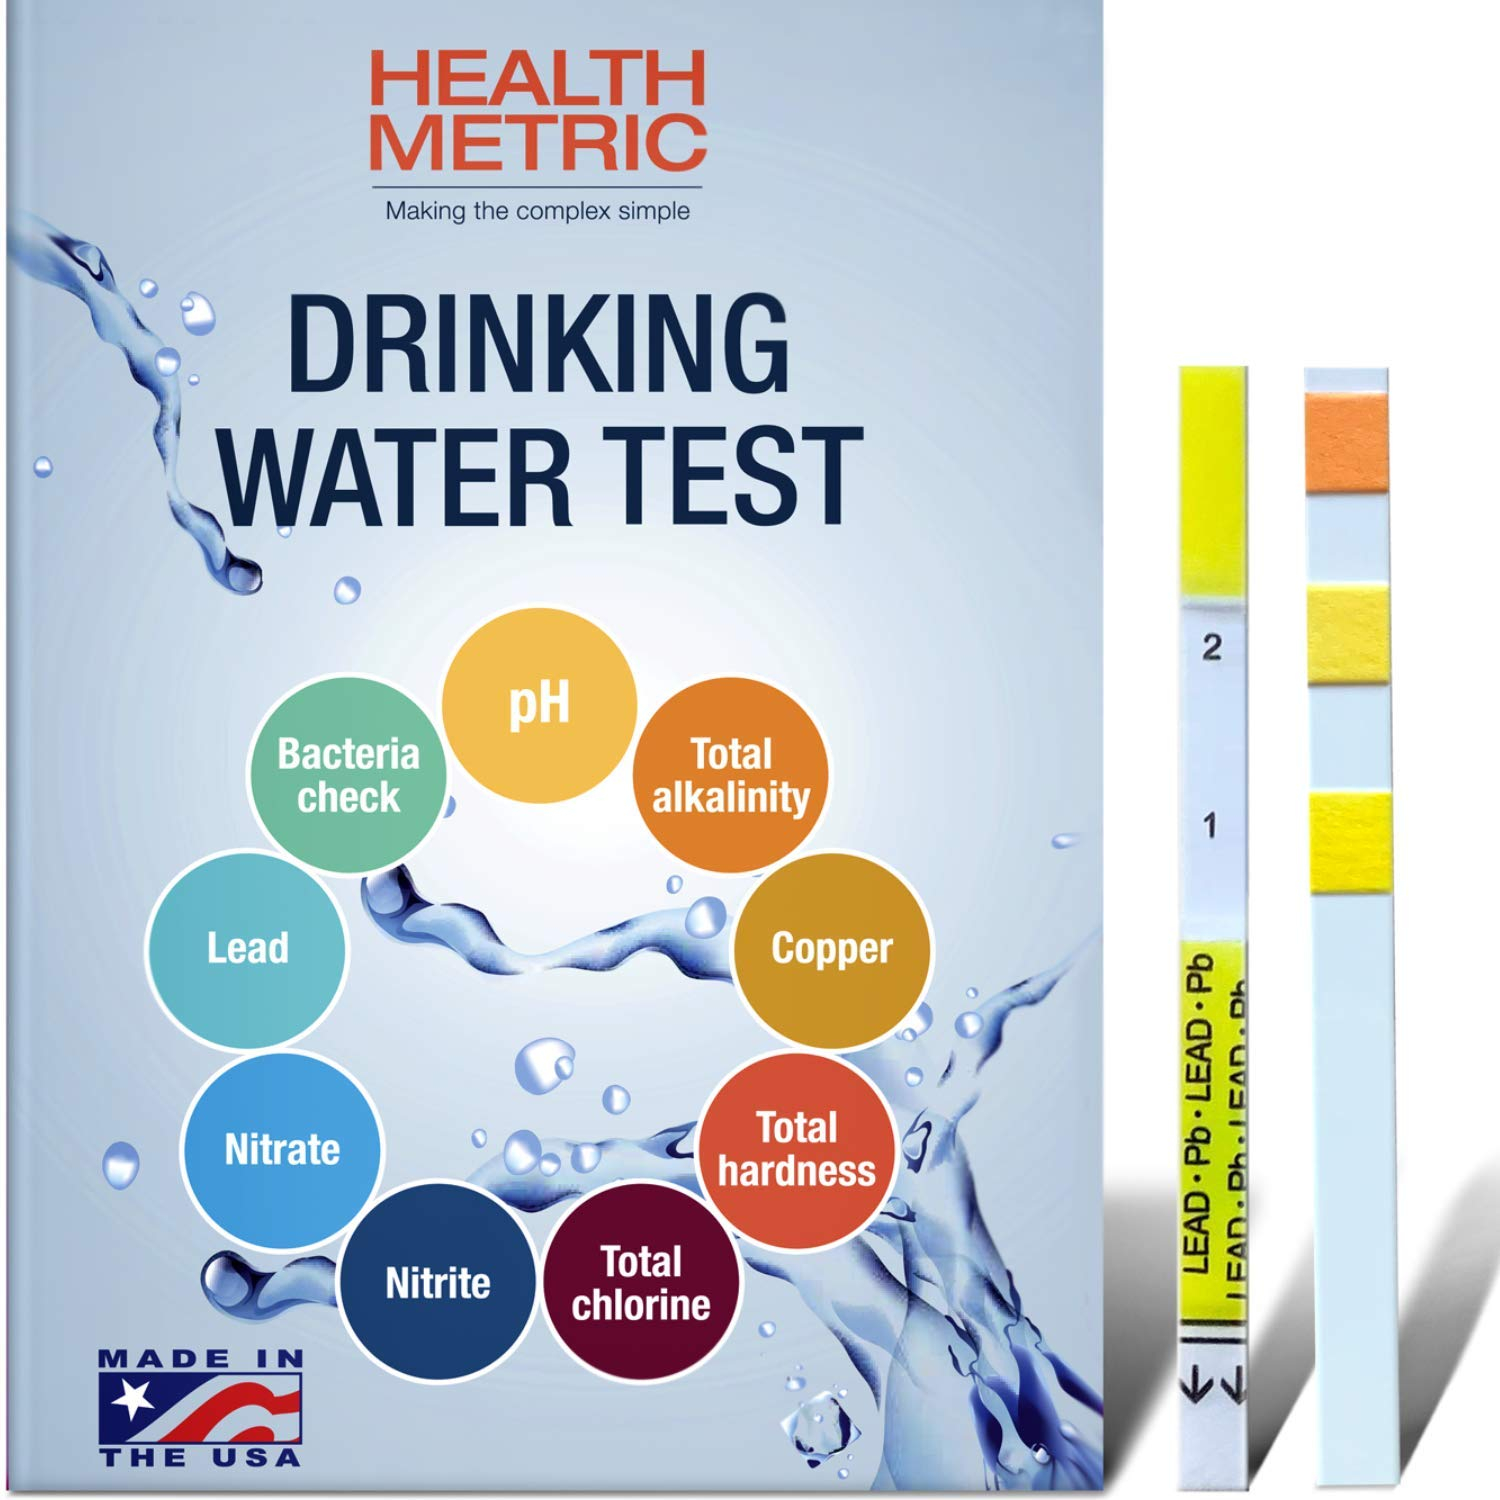 Drinking Water Test Kit For Home Tap And Well Water Easy To Use Testing Strips For Lead Bacteria Ph Copper Nitrate Chlorine Hardness And More Made In The Usa